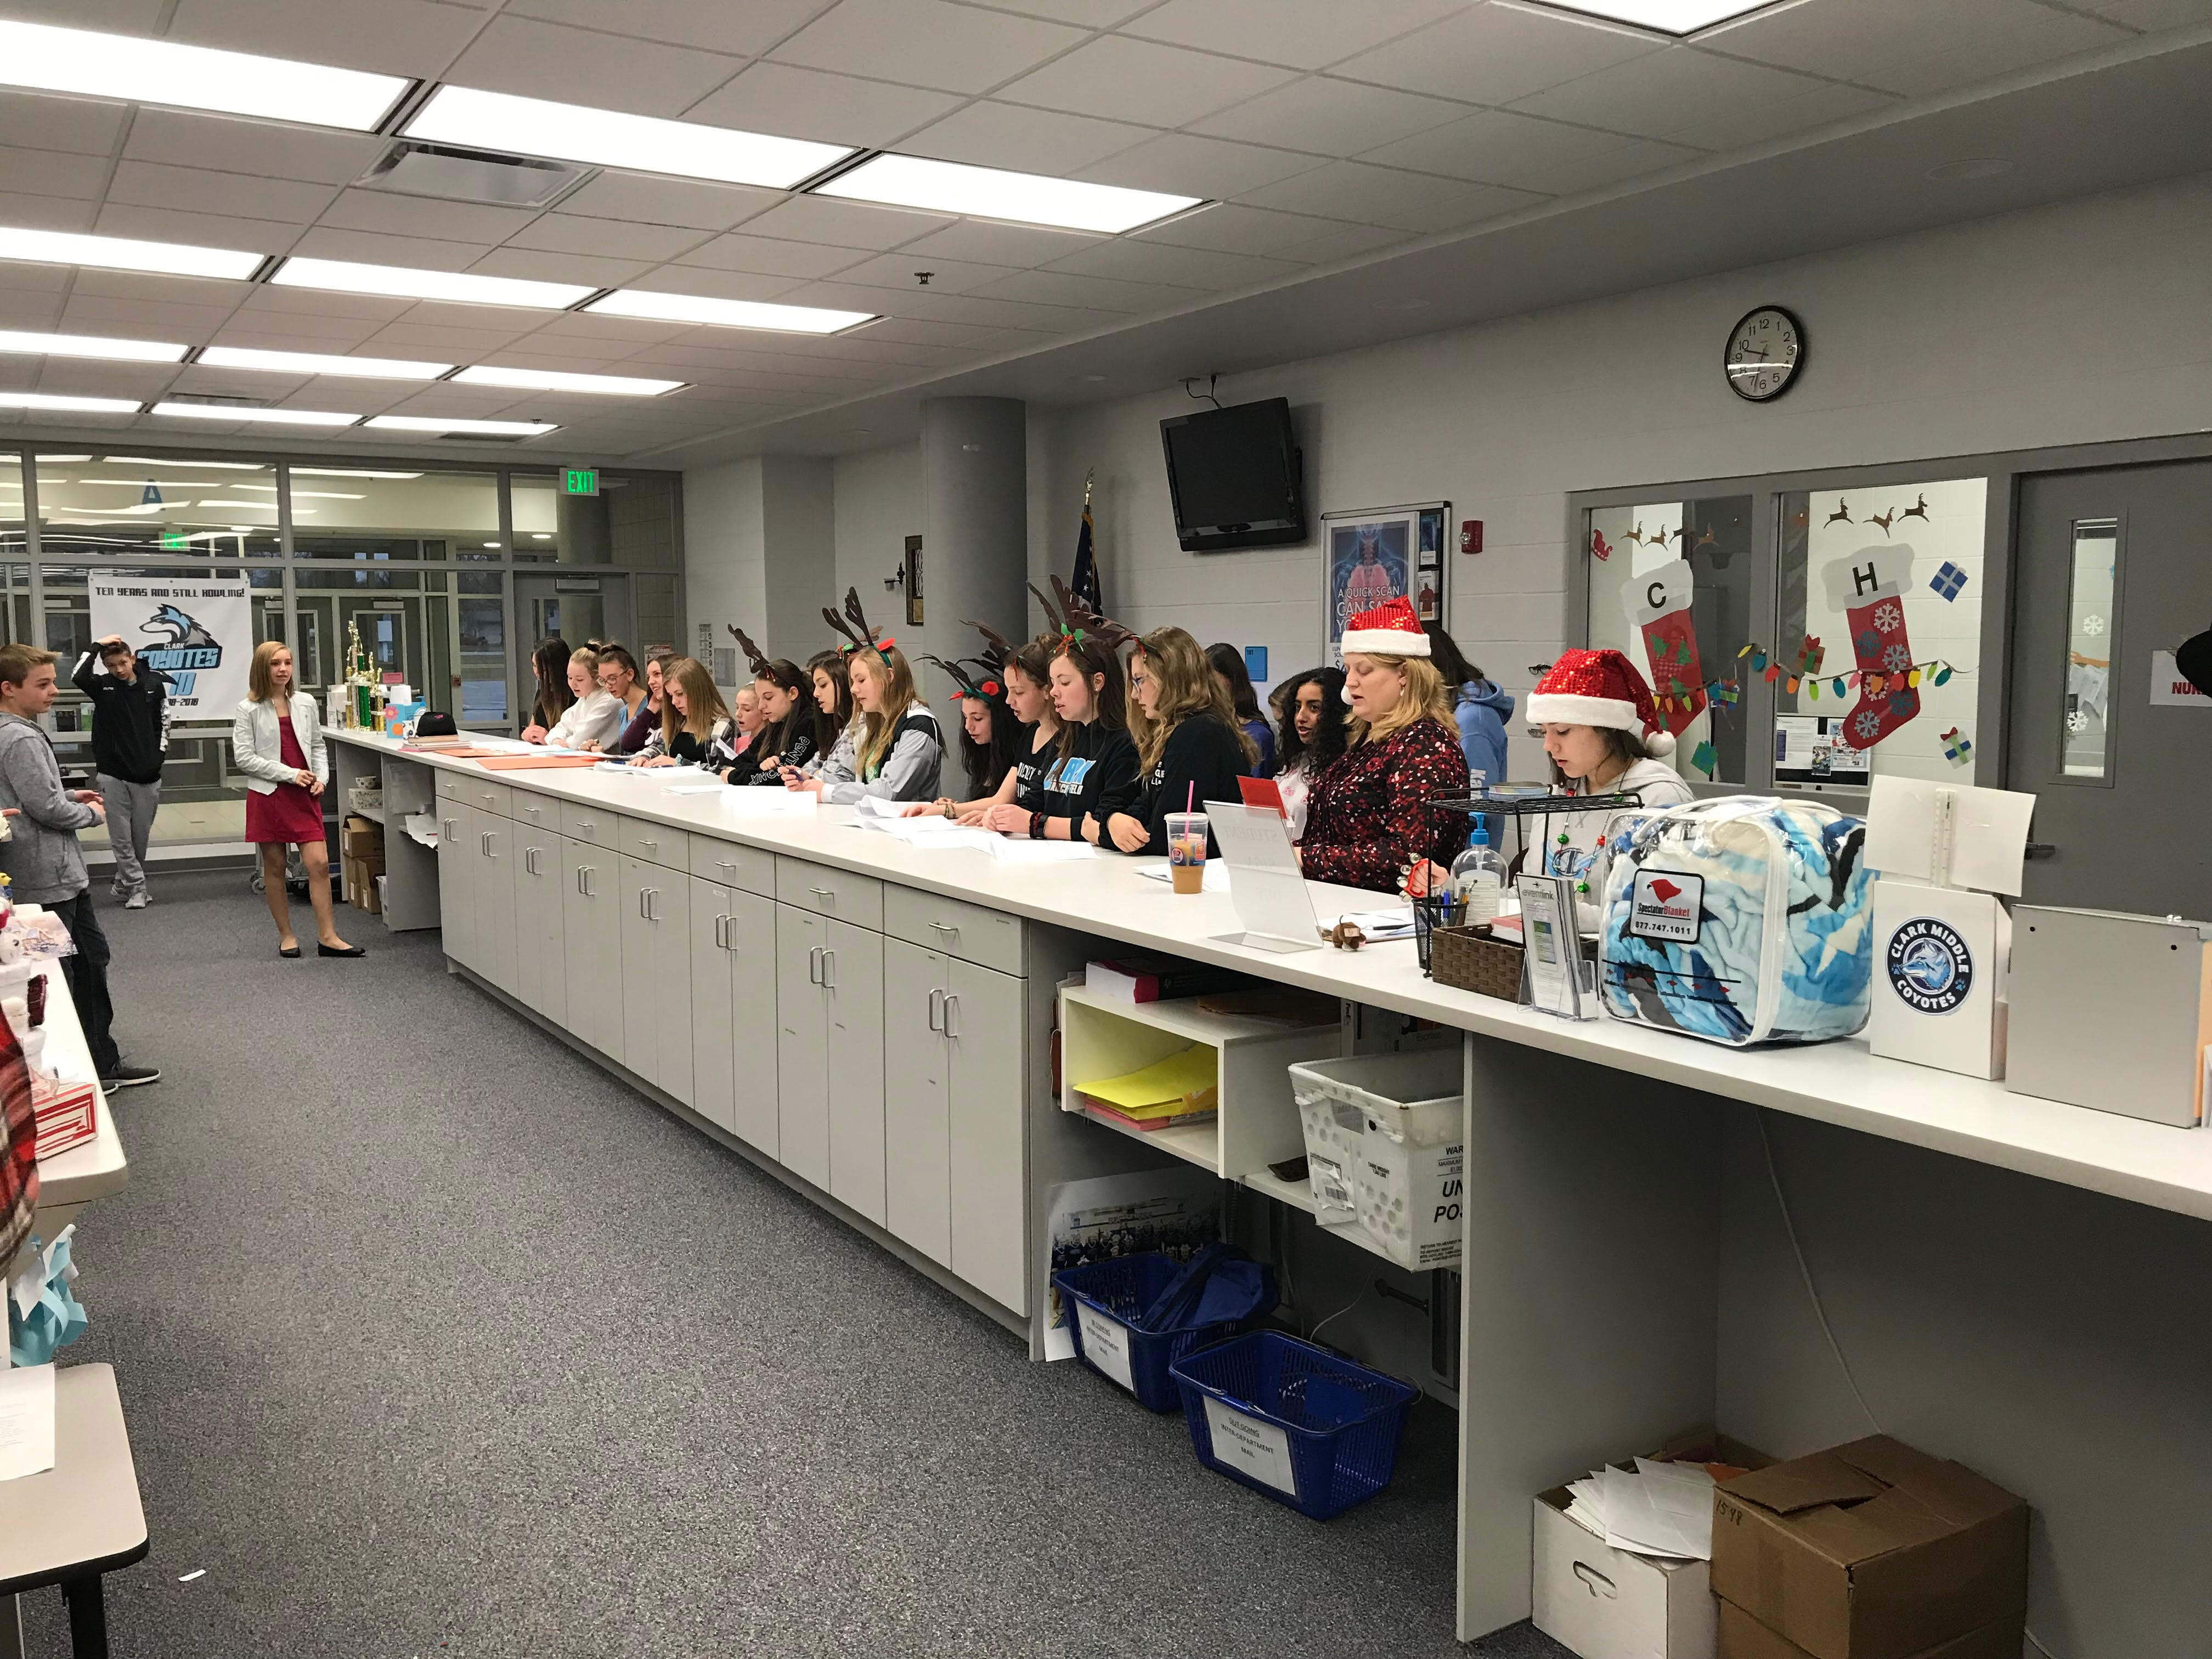 Clark Middle School students spreading holiday cheer!